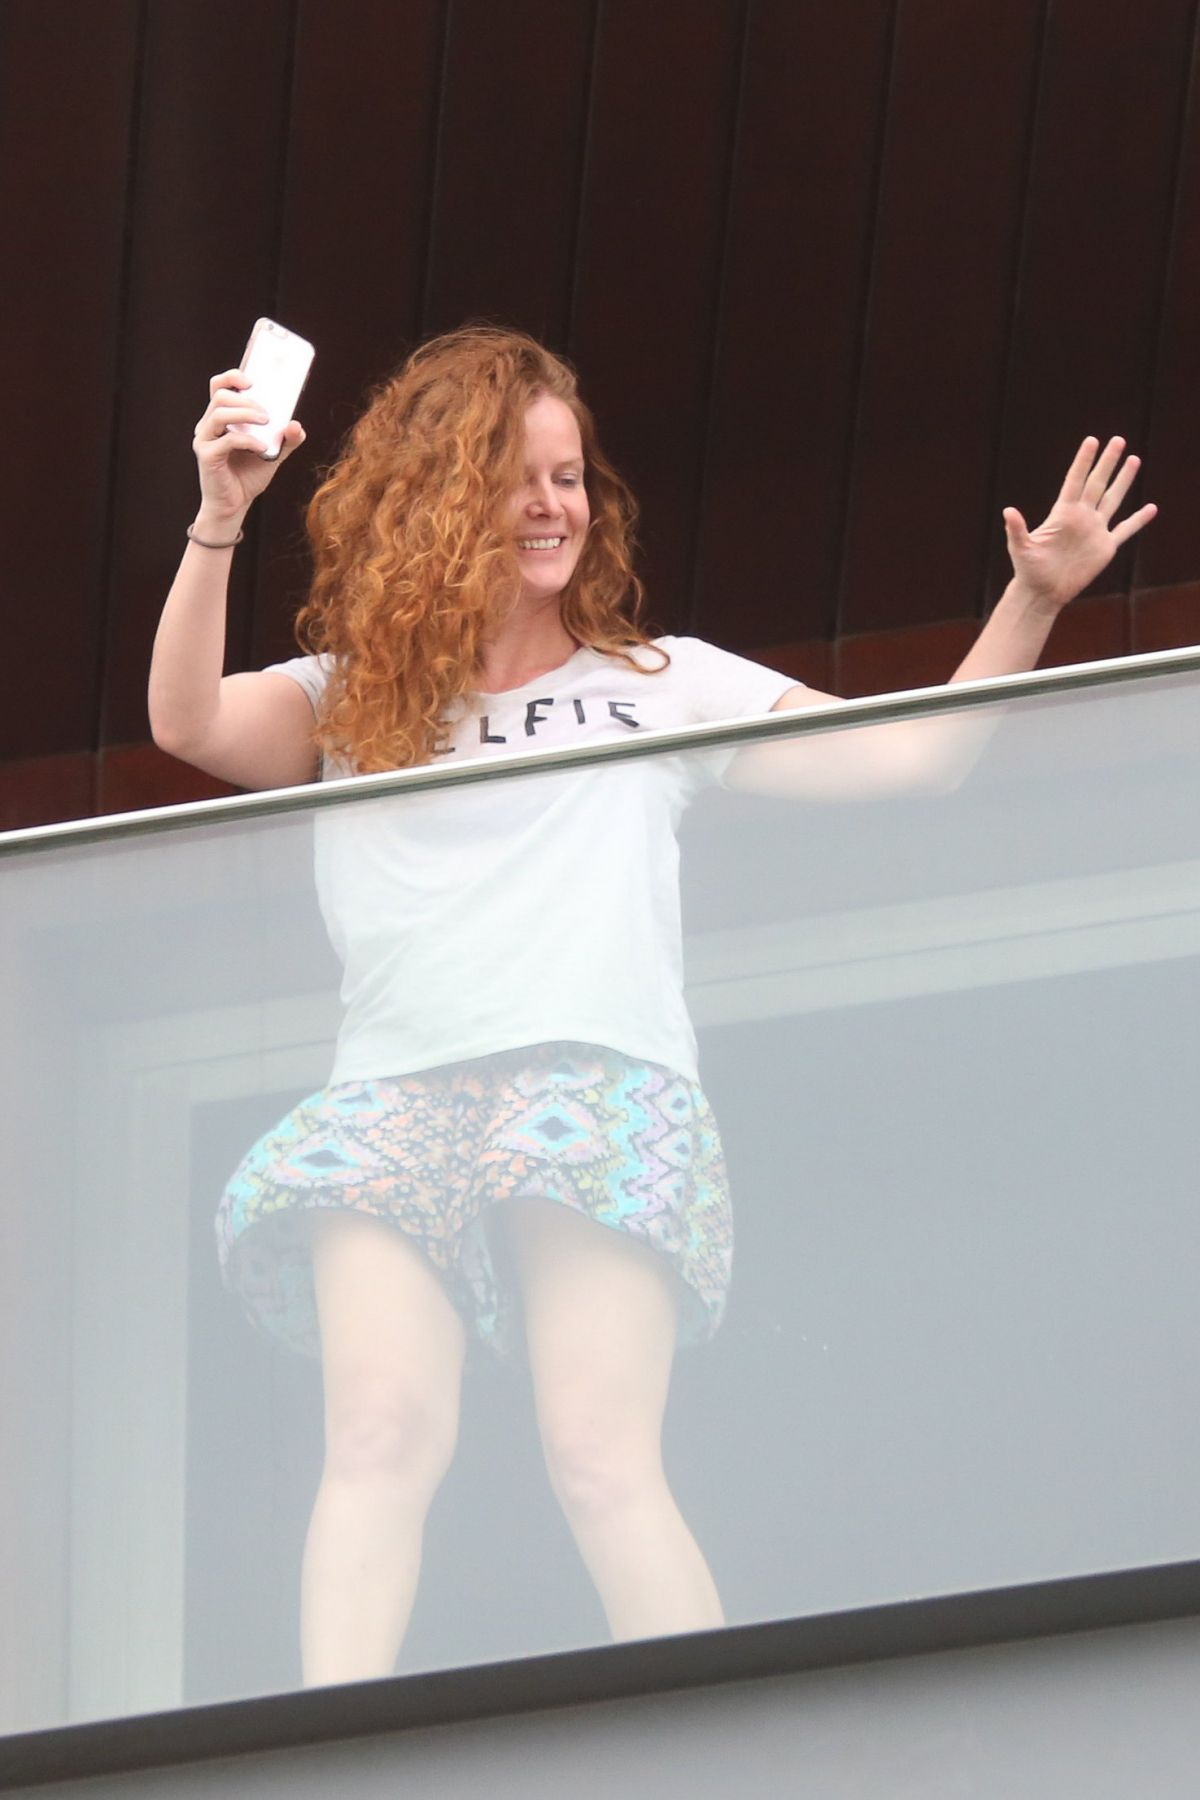 REBECCA MADER at Her Hotel Room Balcony in Rio De Janeiro 06/10/2016